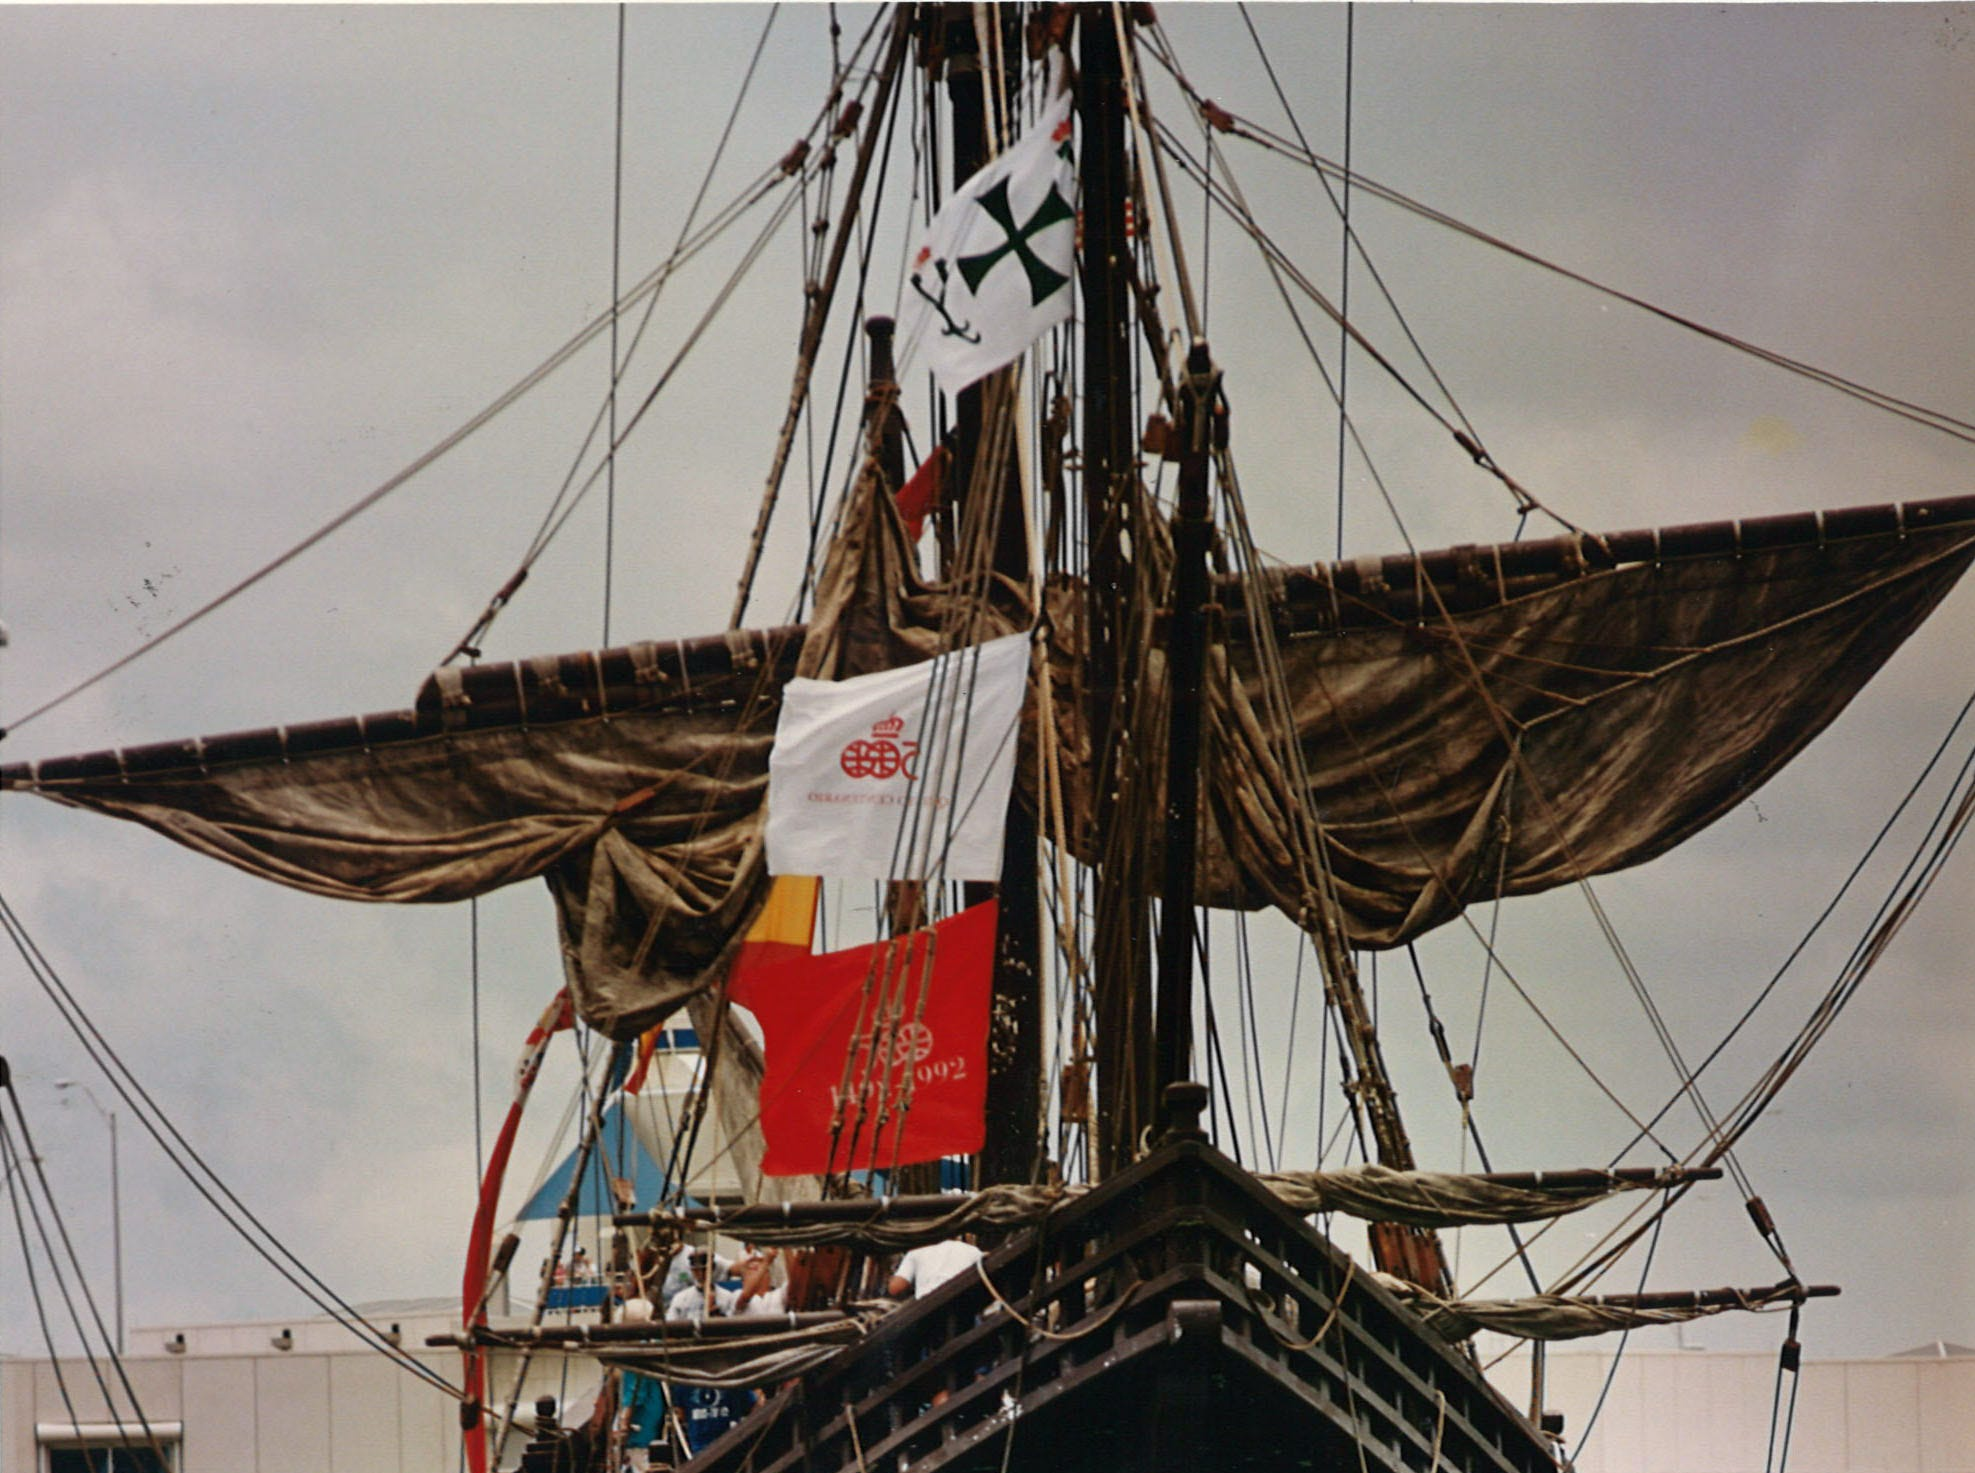 The Santa Maria sits at the Corpus Christi Barge Dock on June 12, 1993 as thousands visit to get a view of the replic Columbus ships.